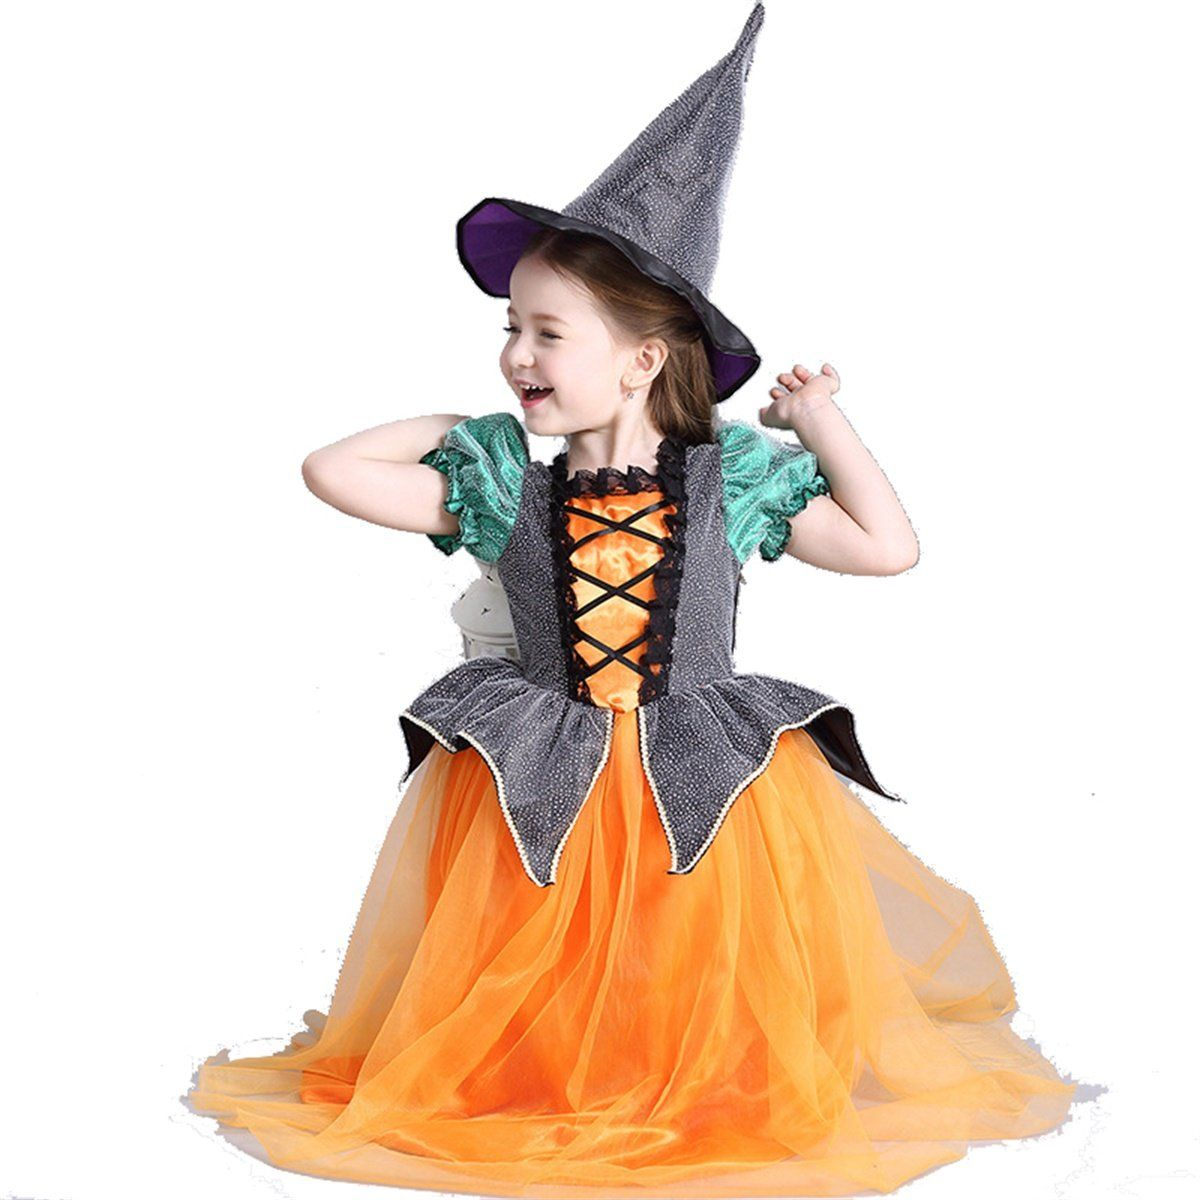 Novelty & Special Use Girls Costumes Halloween Costume For Kids Witch Costume Girl Fancy Dress Hat Children Fantasia Infantil Carnival Party Child Cosplay Christmas Packing Of Nominated Brand